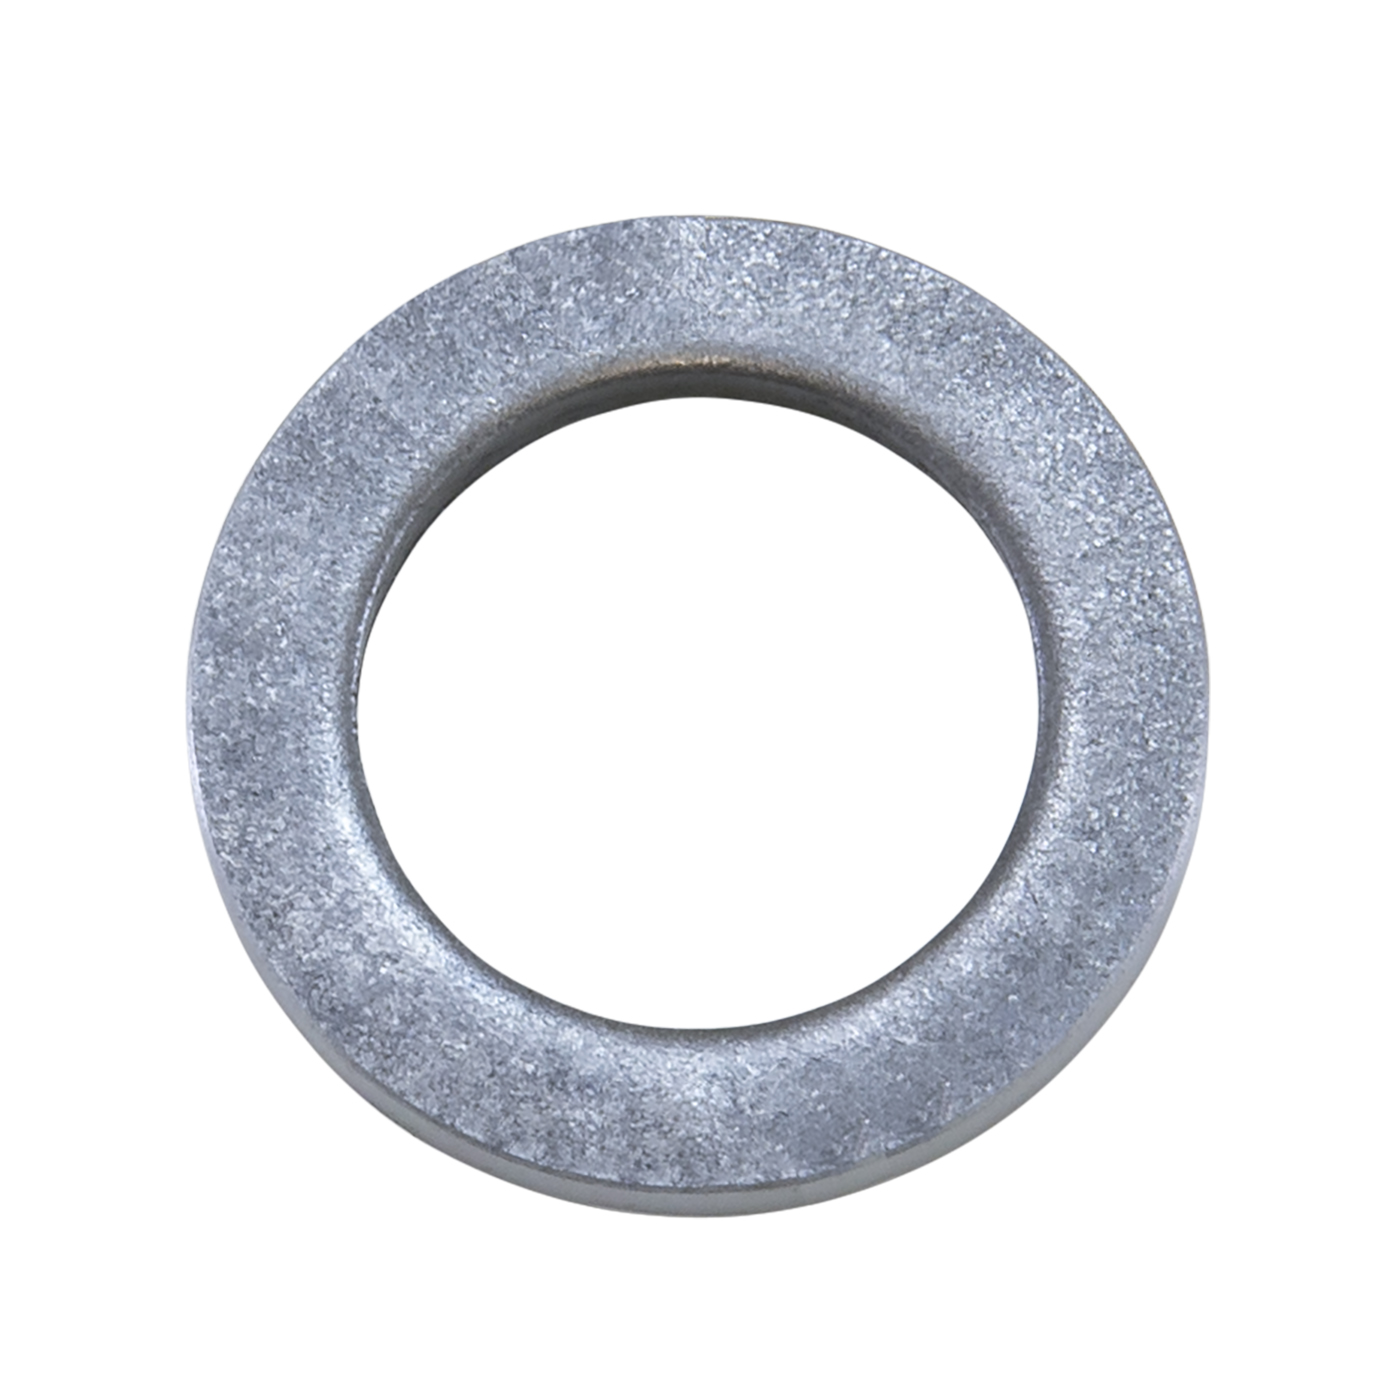 YSPPN-032 - Pinion nut washer